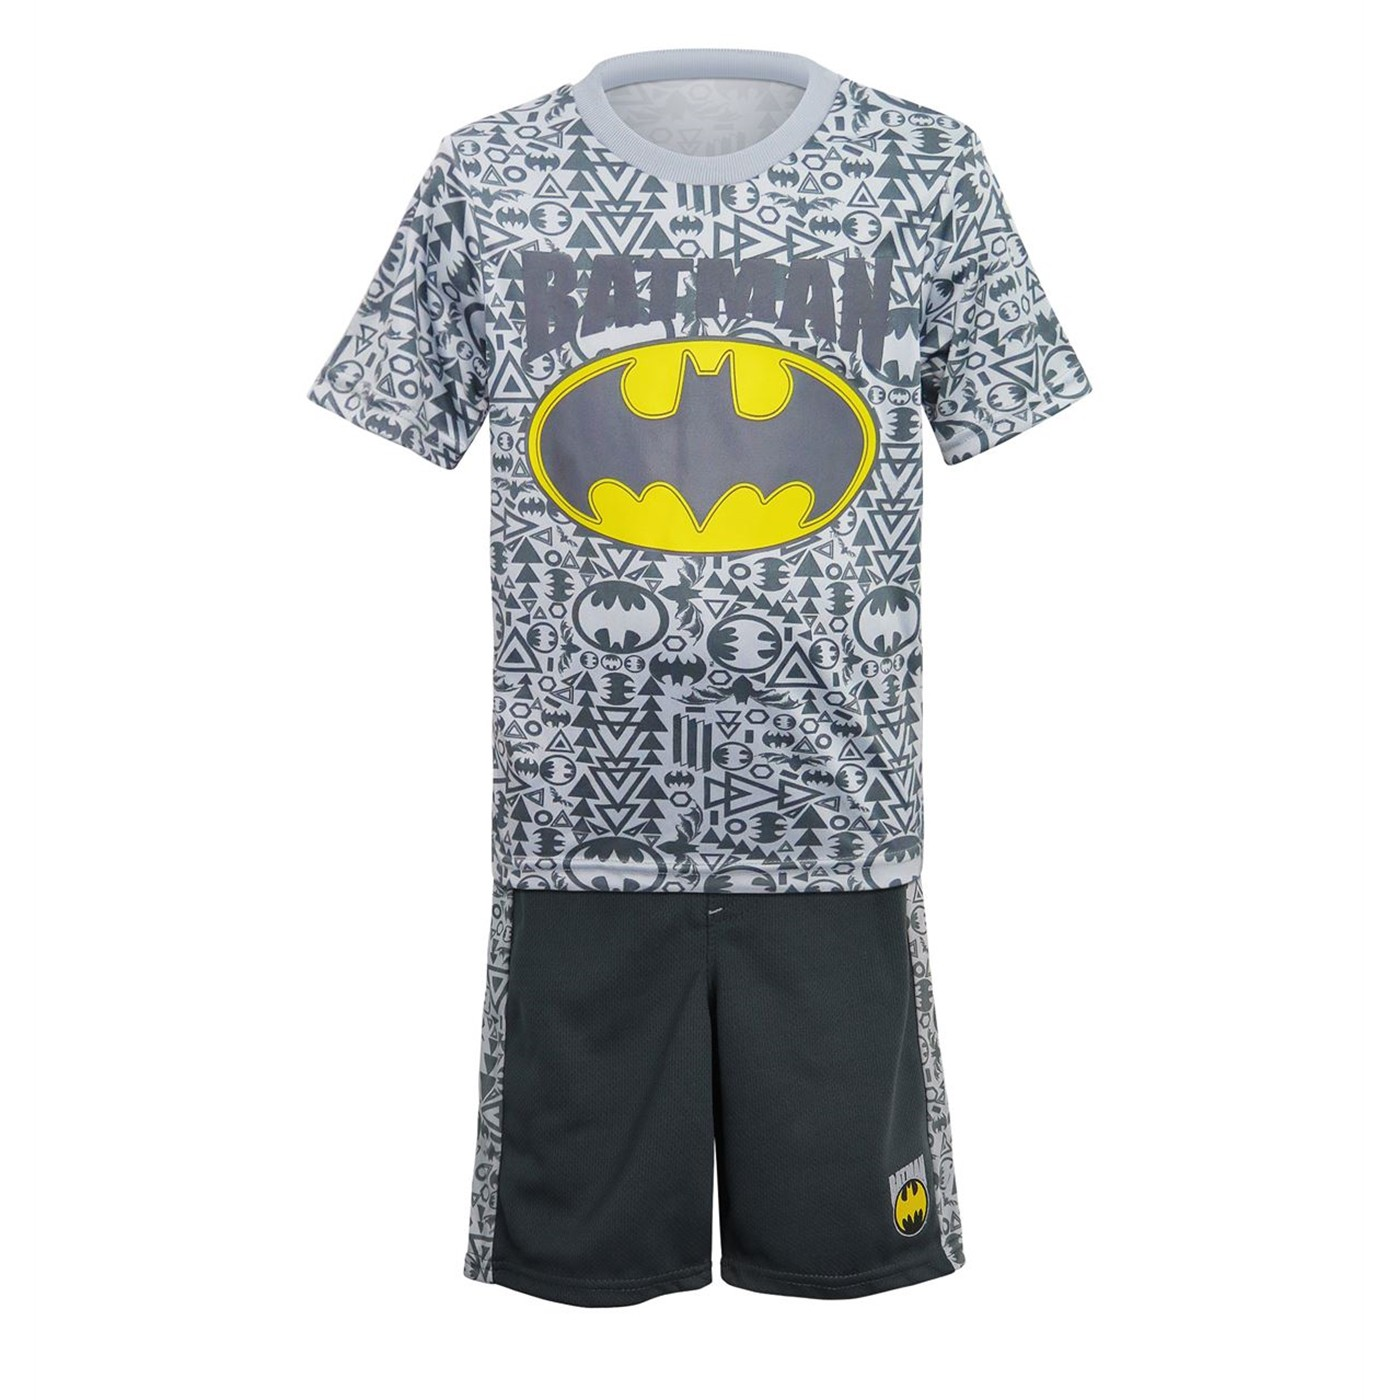 Batman Kids Sublimated T-Shirt & Shorts Set